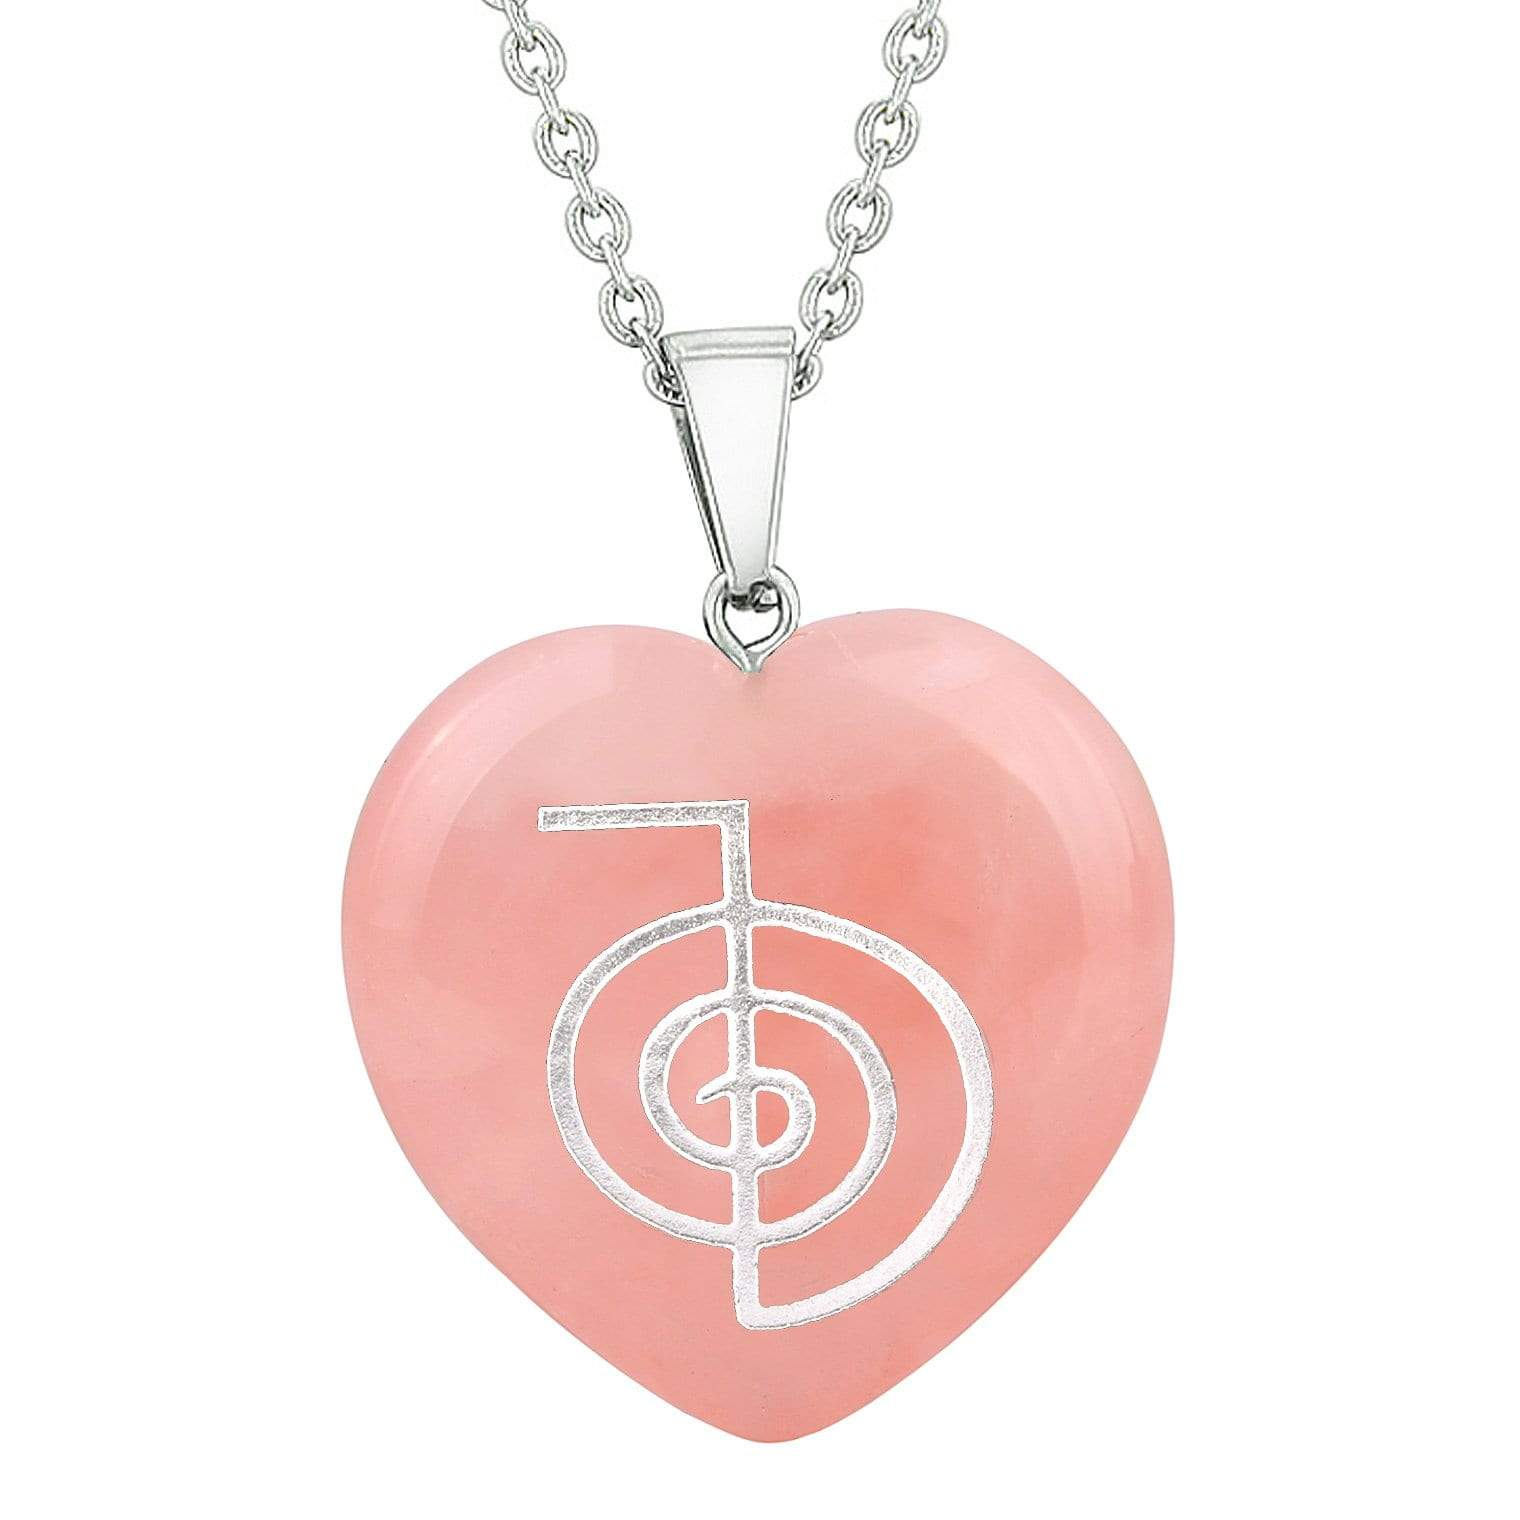 Amulet Choku Rei Reiki Magical Powers Protection Energy Rose Quartz Puffy Heart Pendant Necklace